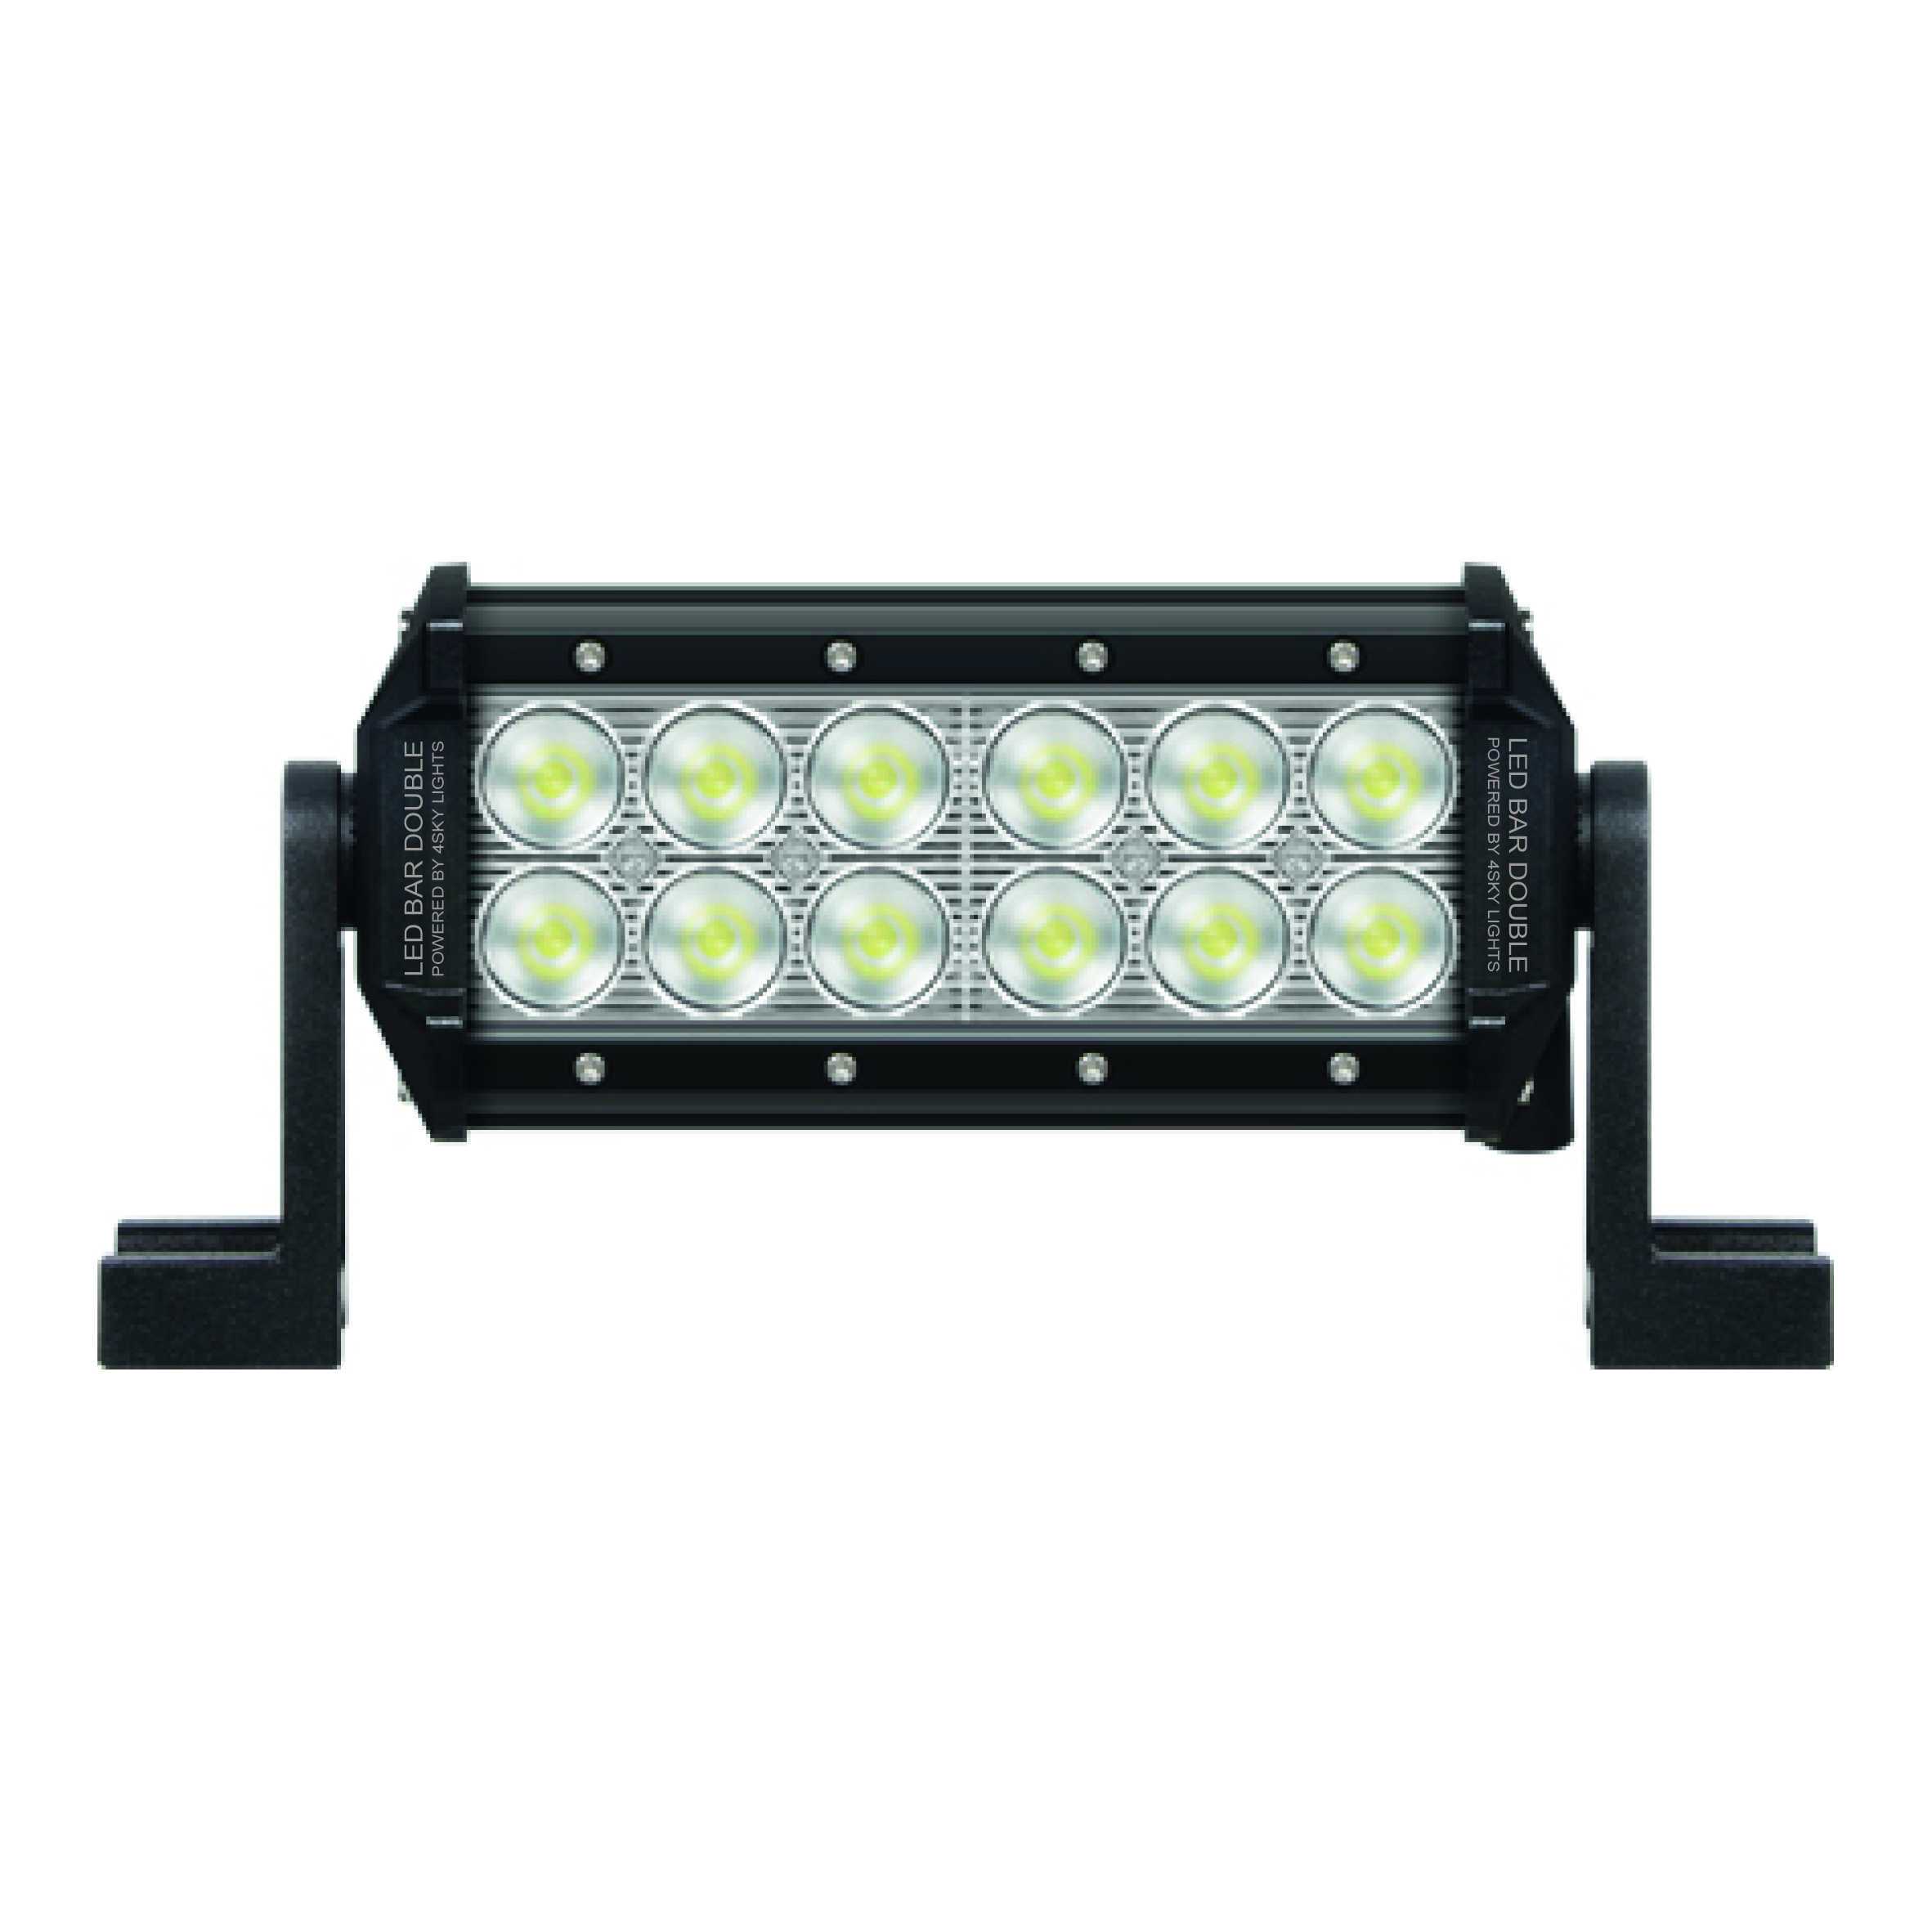 7 Inch Verstraler Led Light Bar